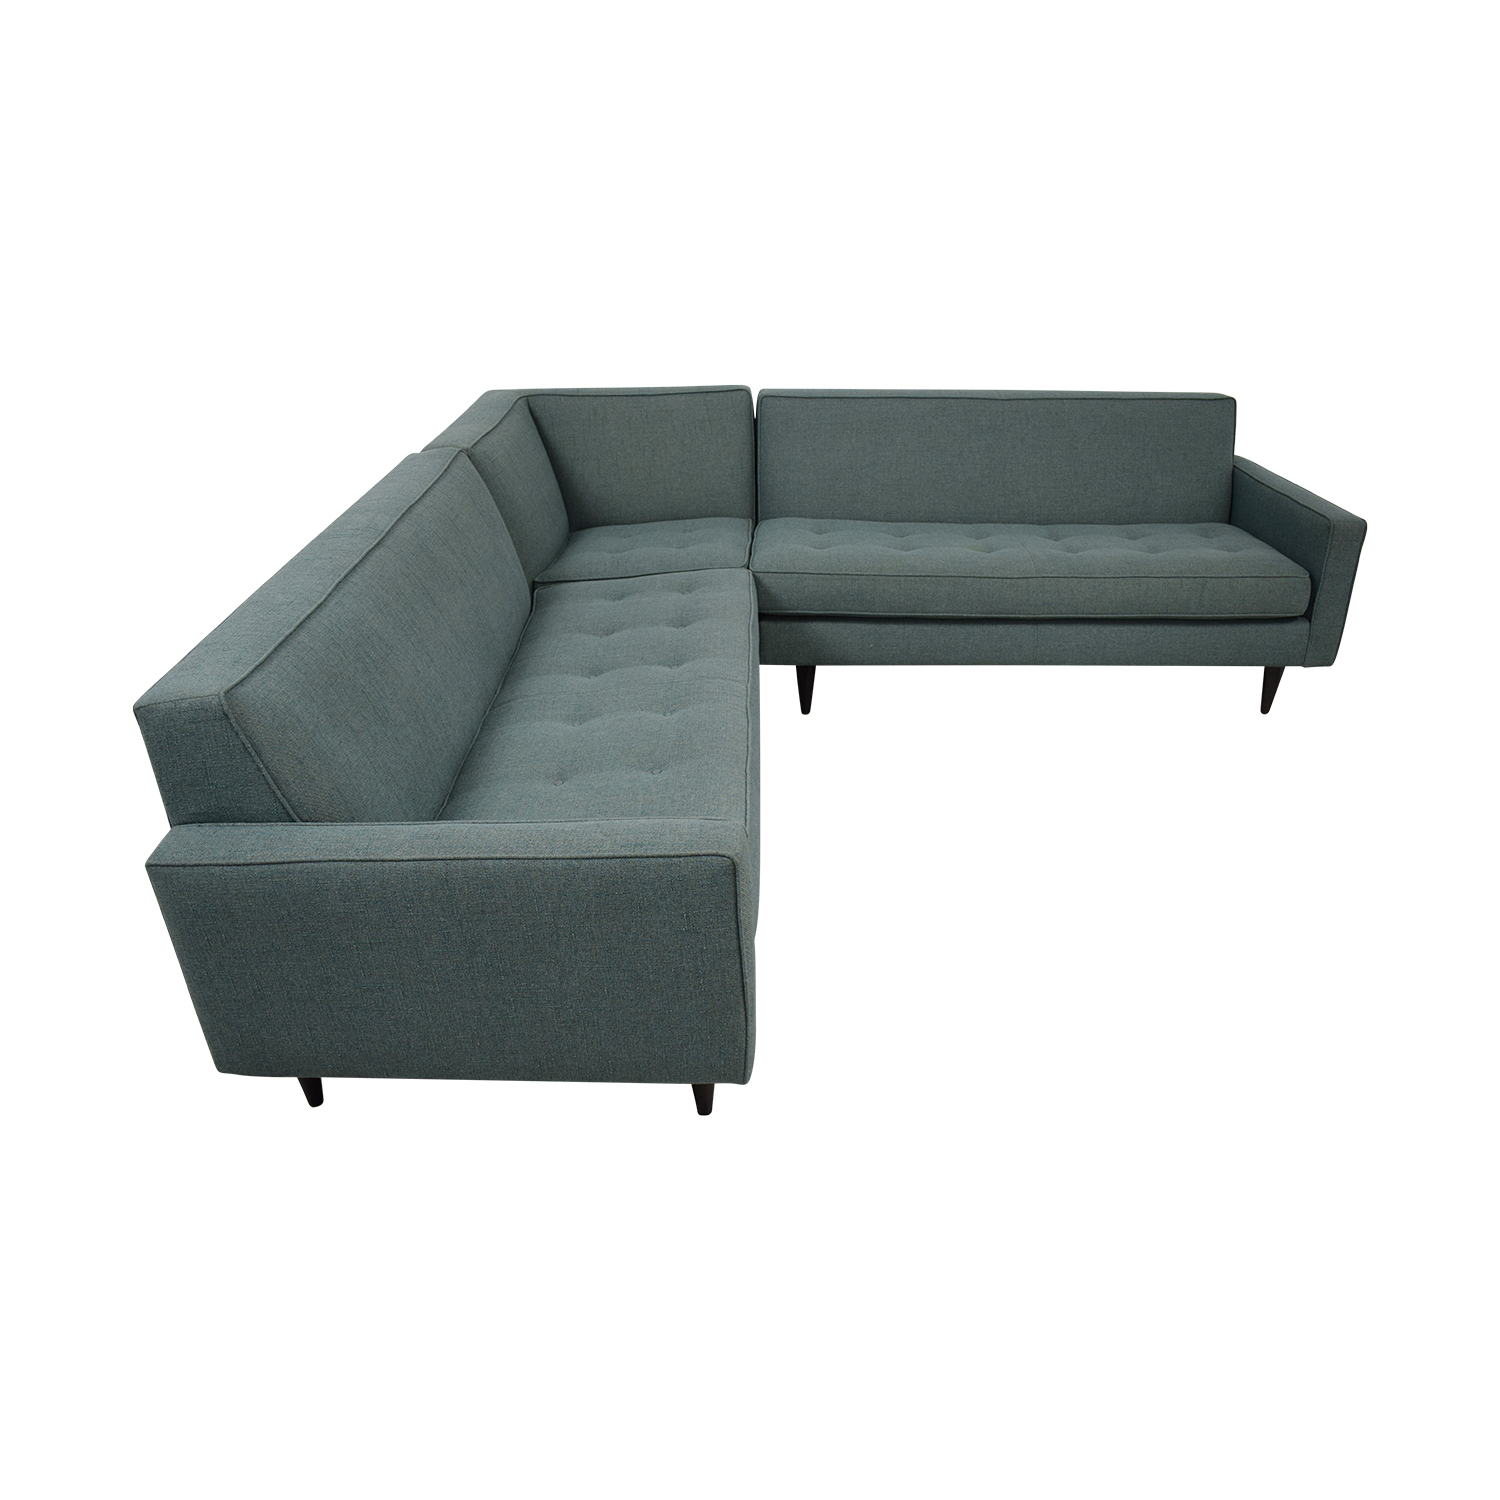 Room & Board Room & Board Reese Tactum Teal Sectional used